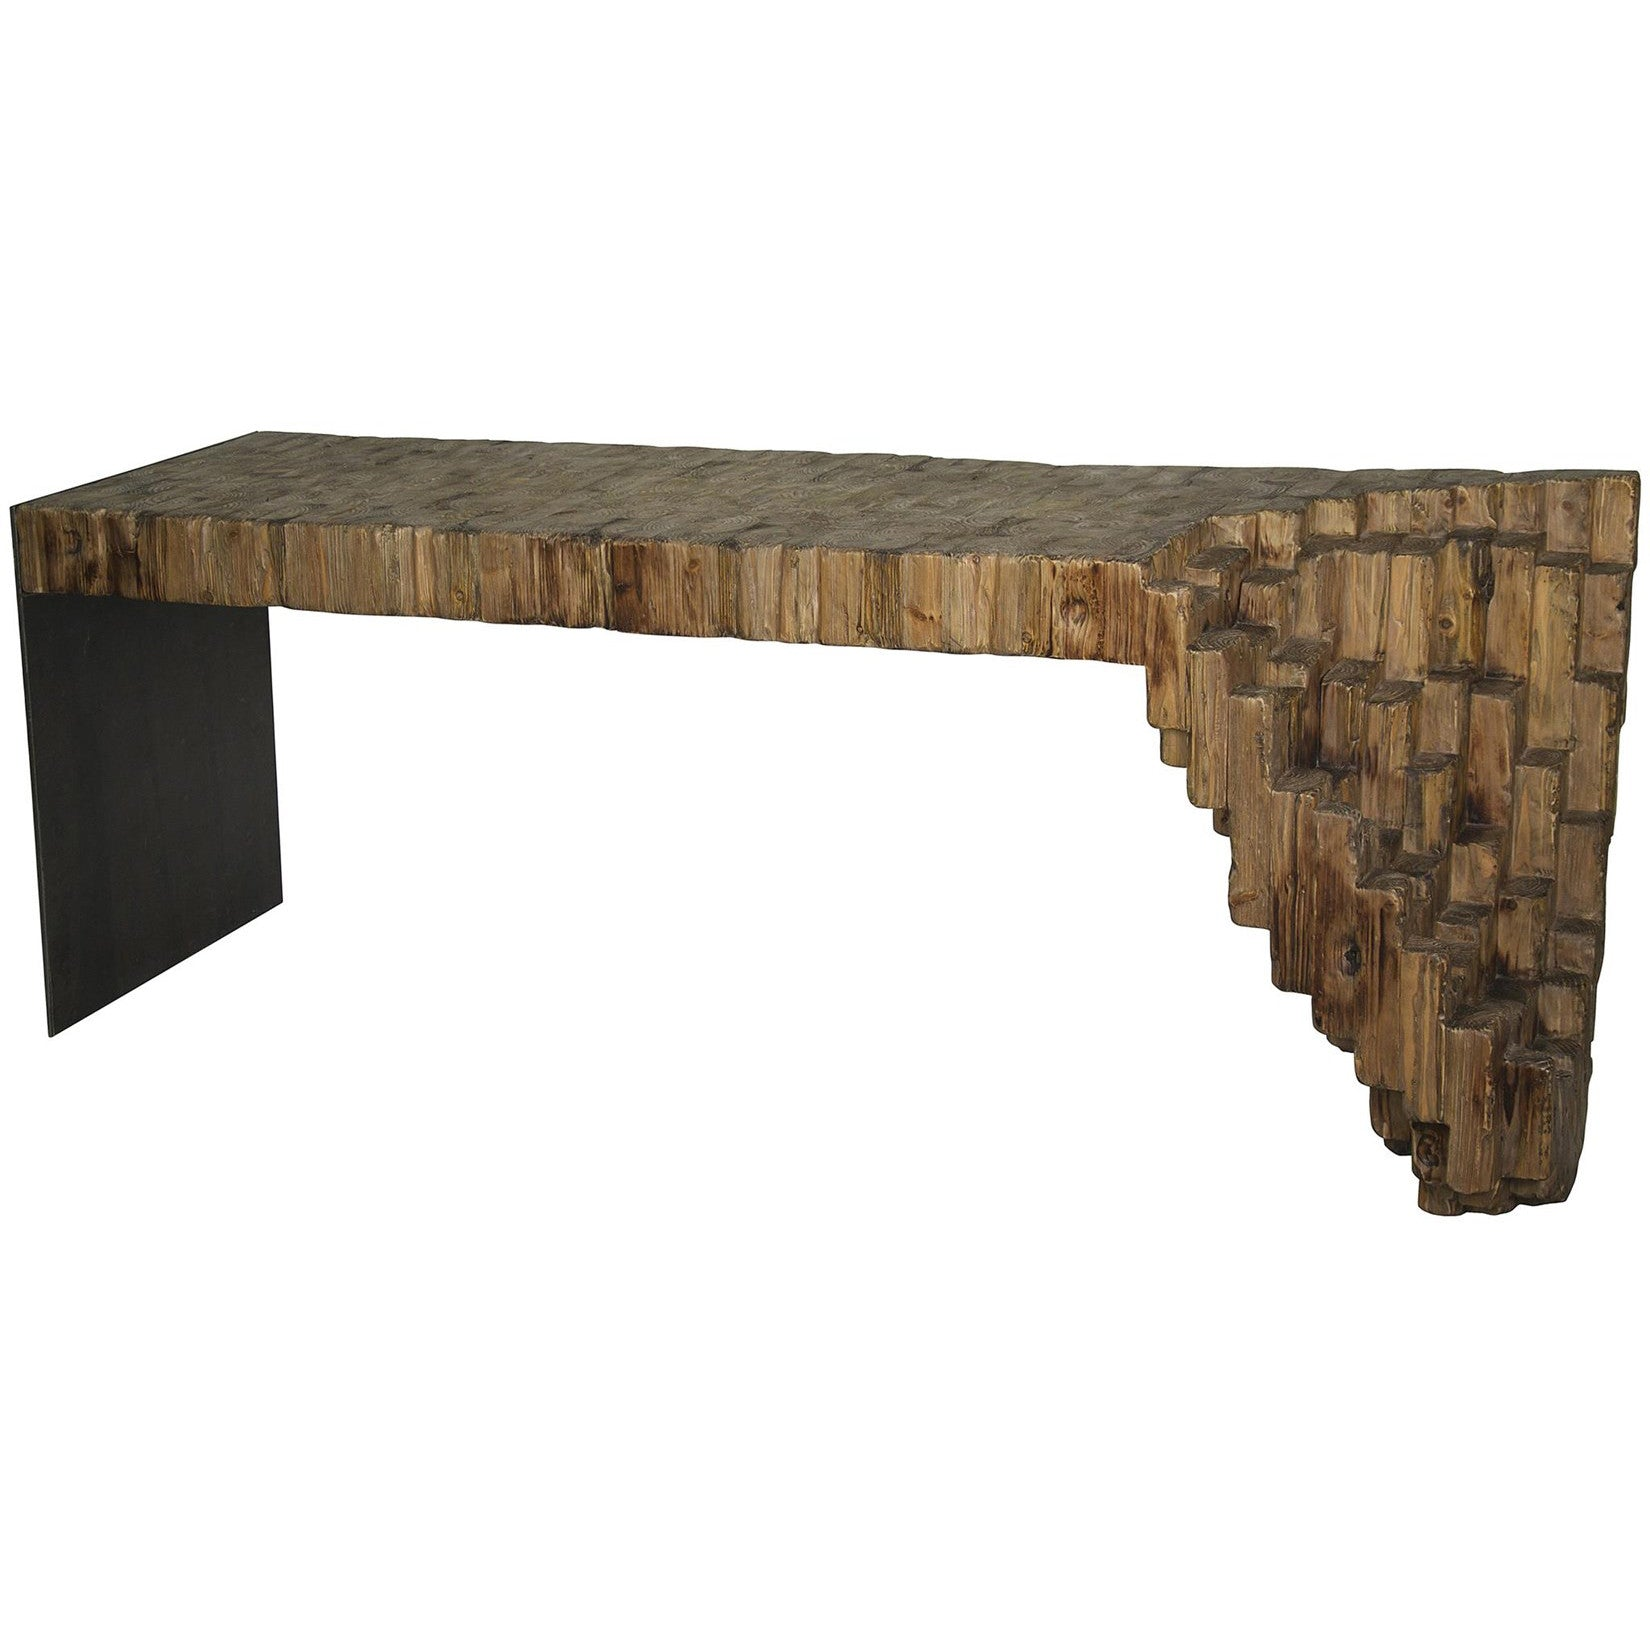 Noir - Berninni Console, Old Wood